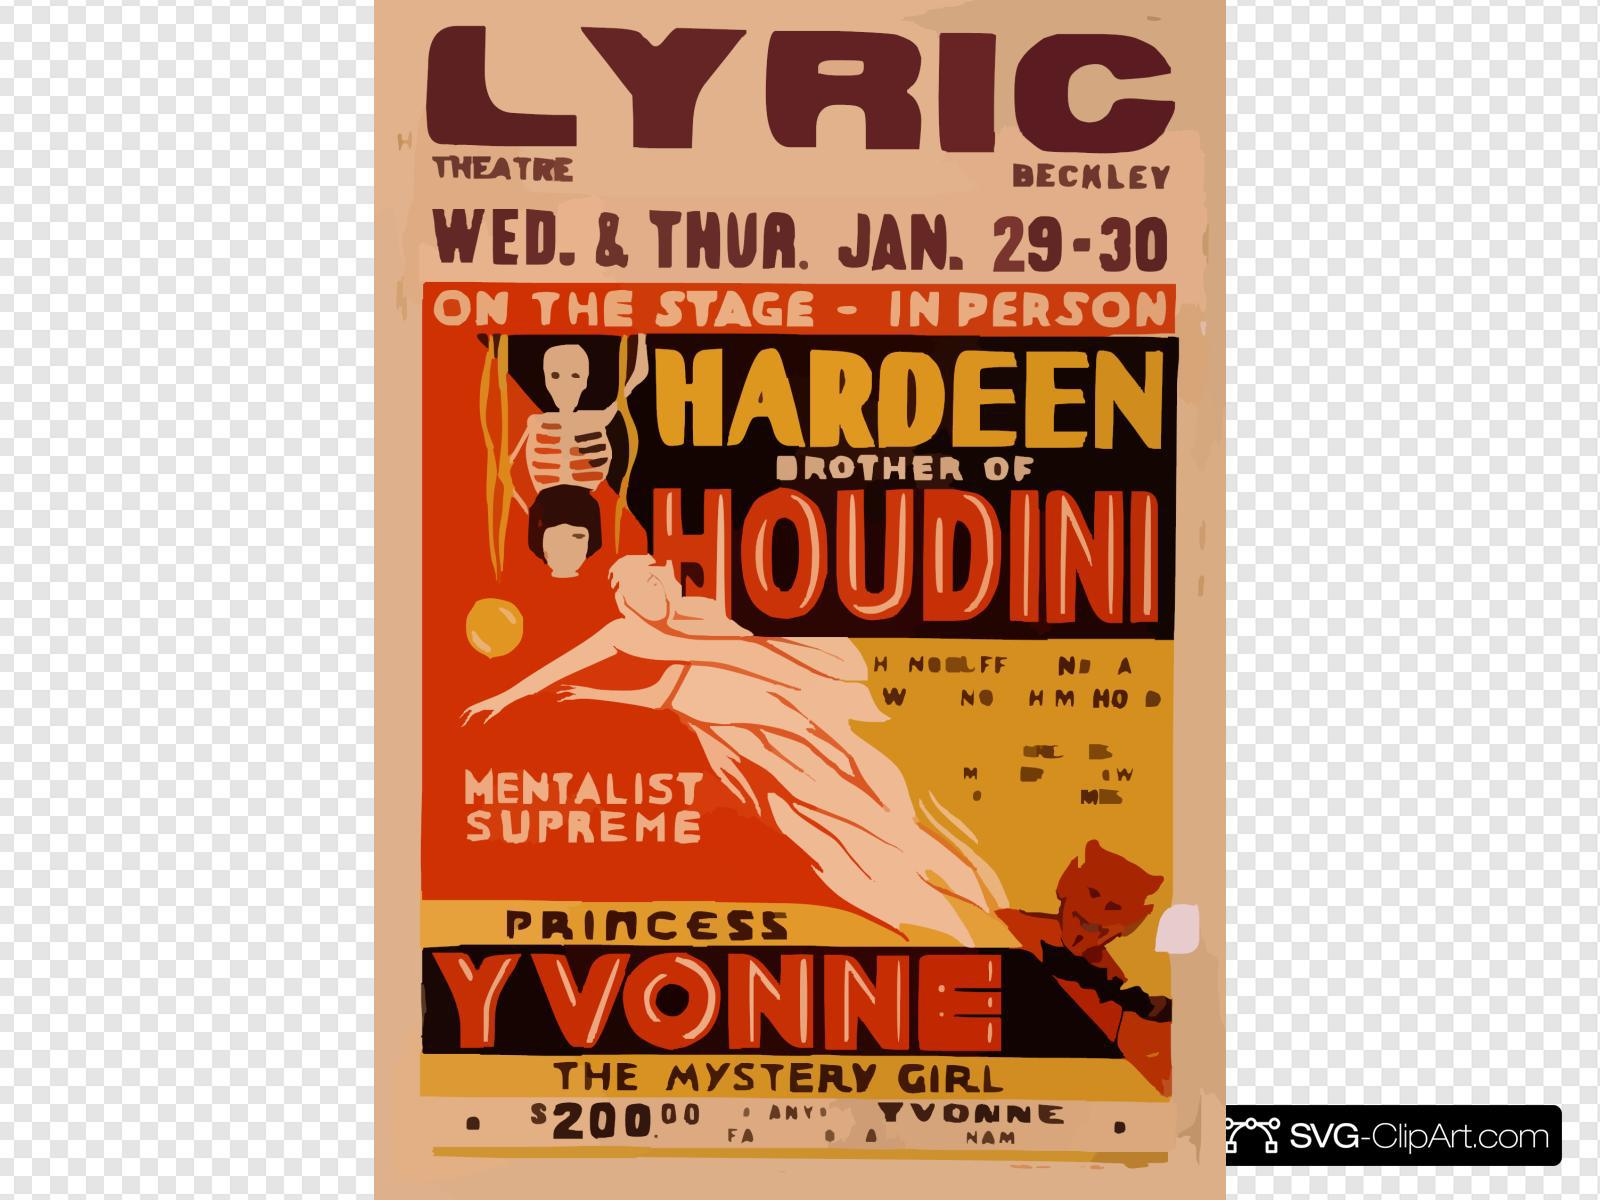 On The Stage - In Person, Hardeen, Brother Of Houdini Handcuffs And Jails Will Not Hold Him : The Greatest Mystery Show Of All Times.  Mentalist Supreme, Princess Yvonne, The Mystery Girl.  SVG Clipart